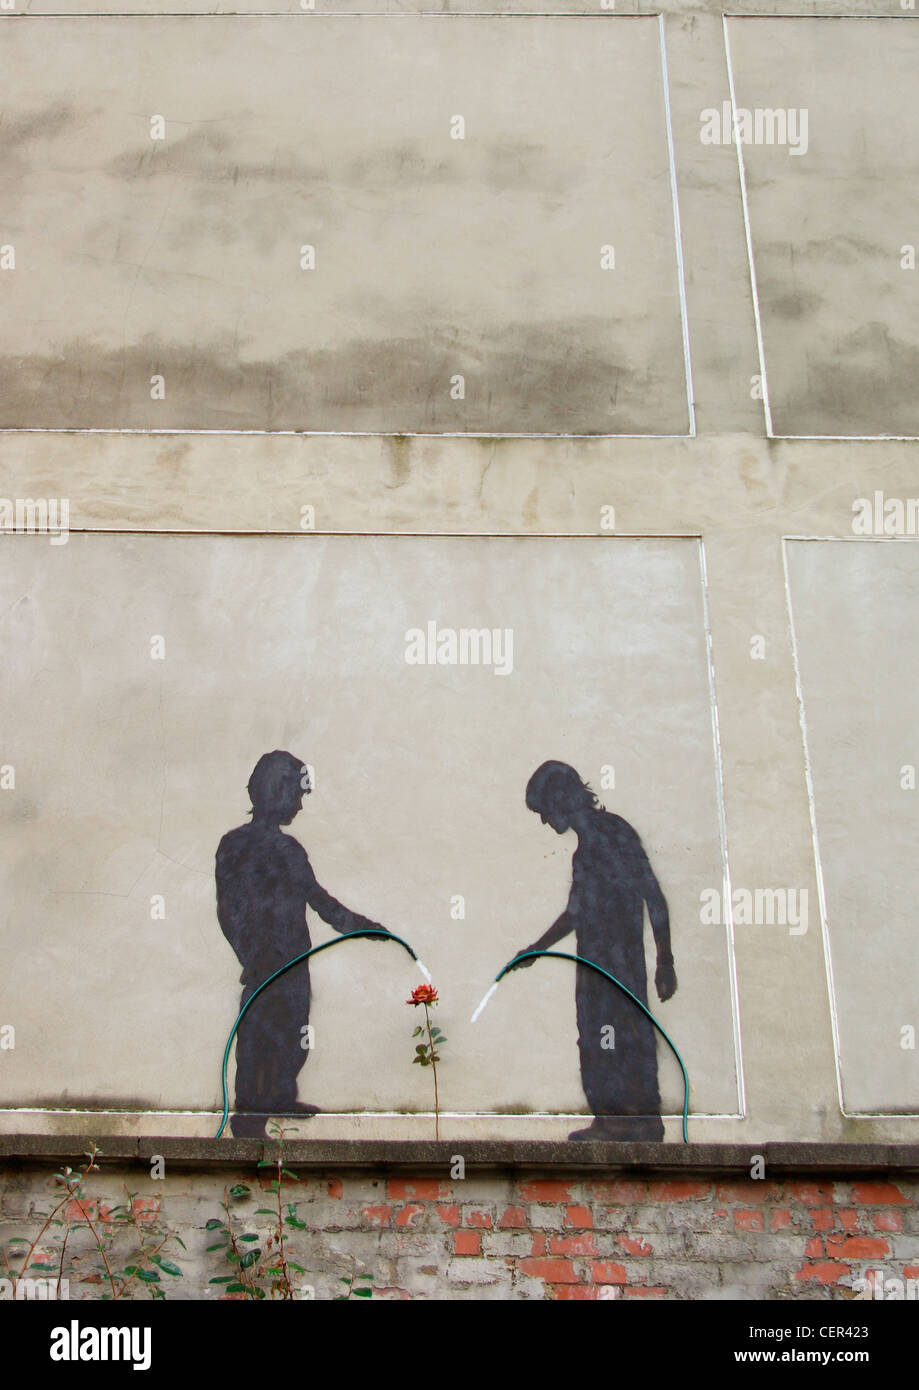 Urban art of two children watering a flower. - Stock Image